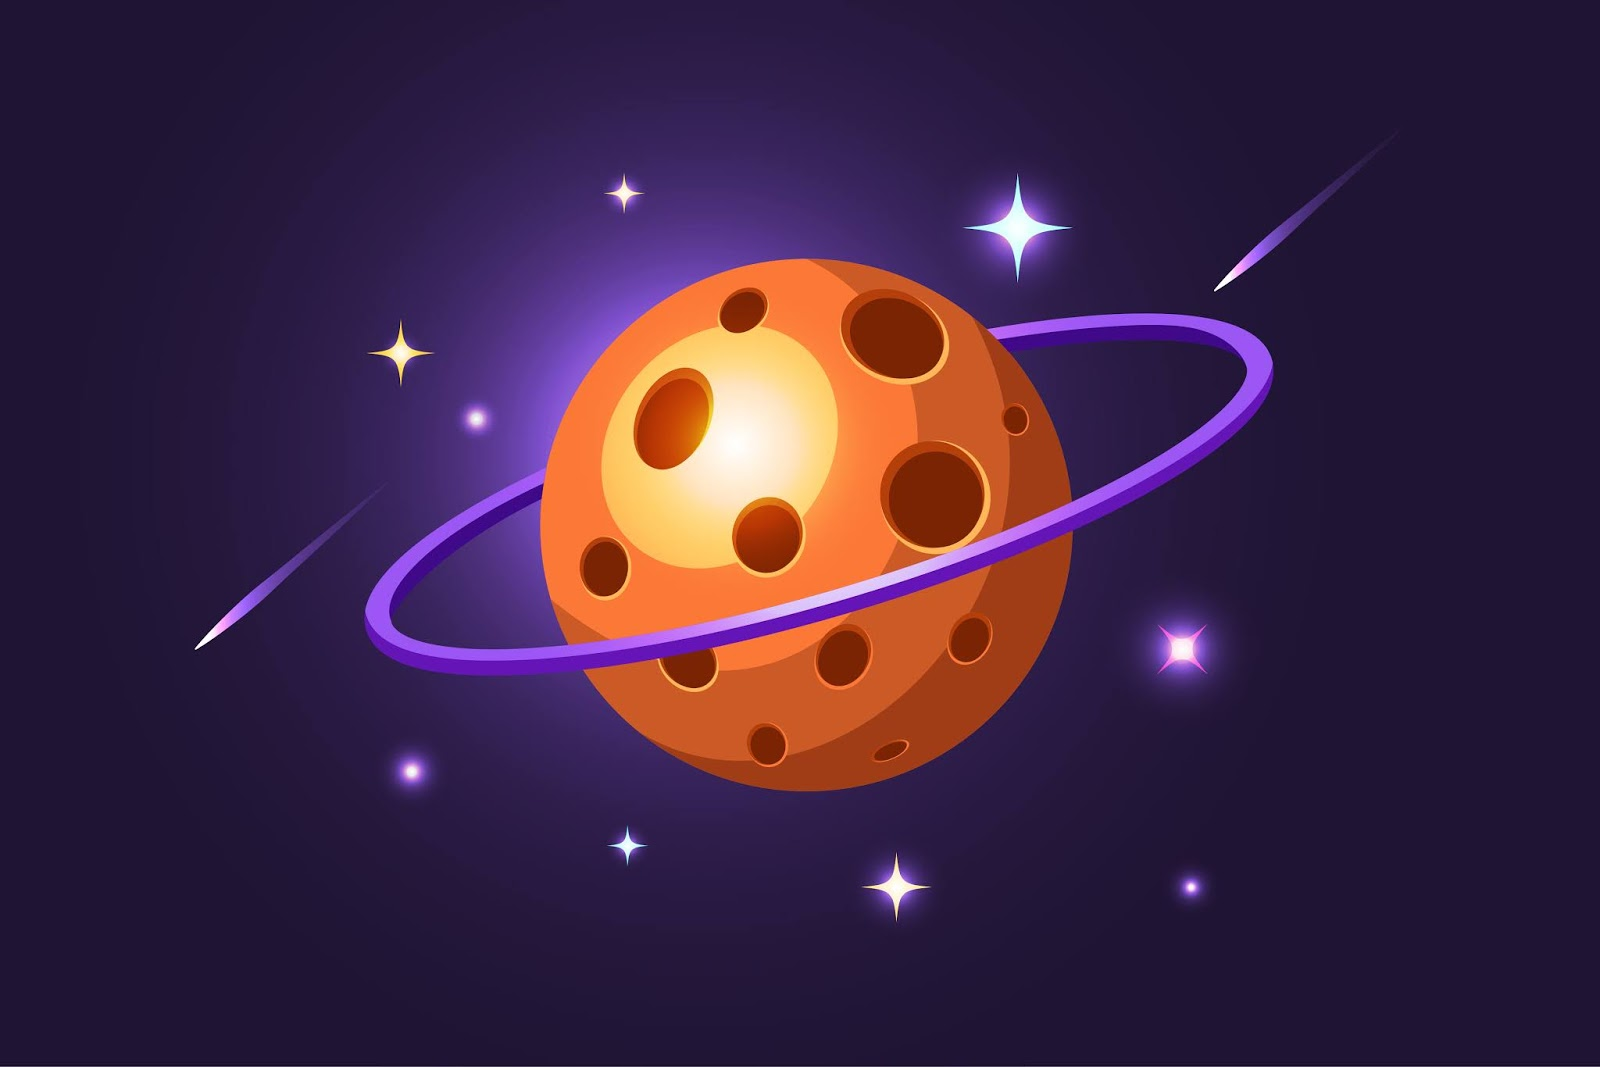 Cheese Planet Illustration Free Download Vector CDR, AI, EPS and PNG Formats